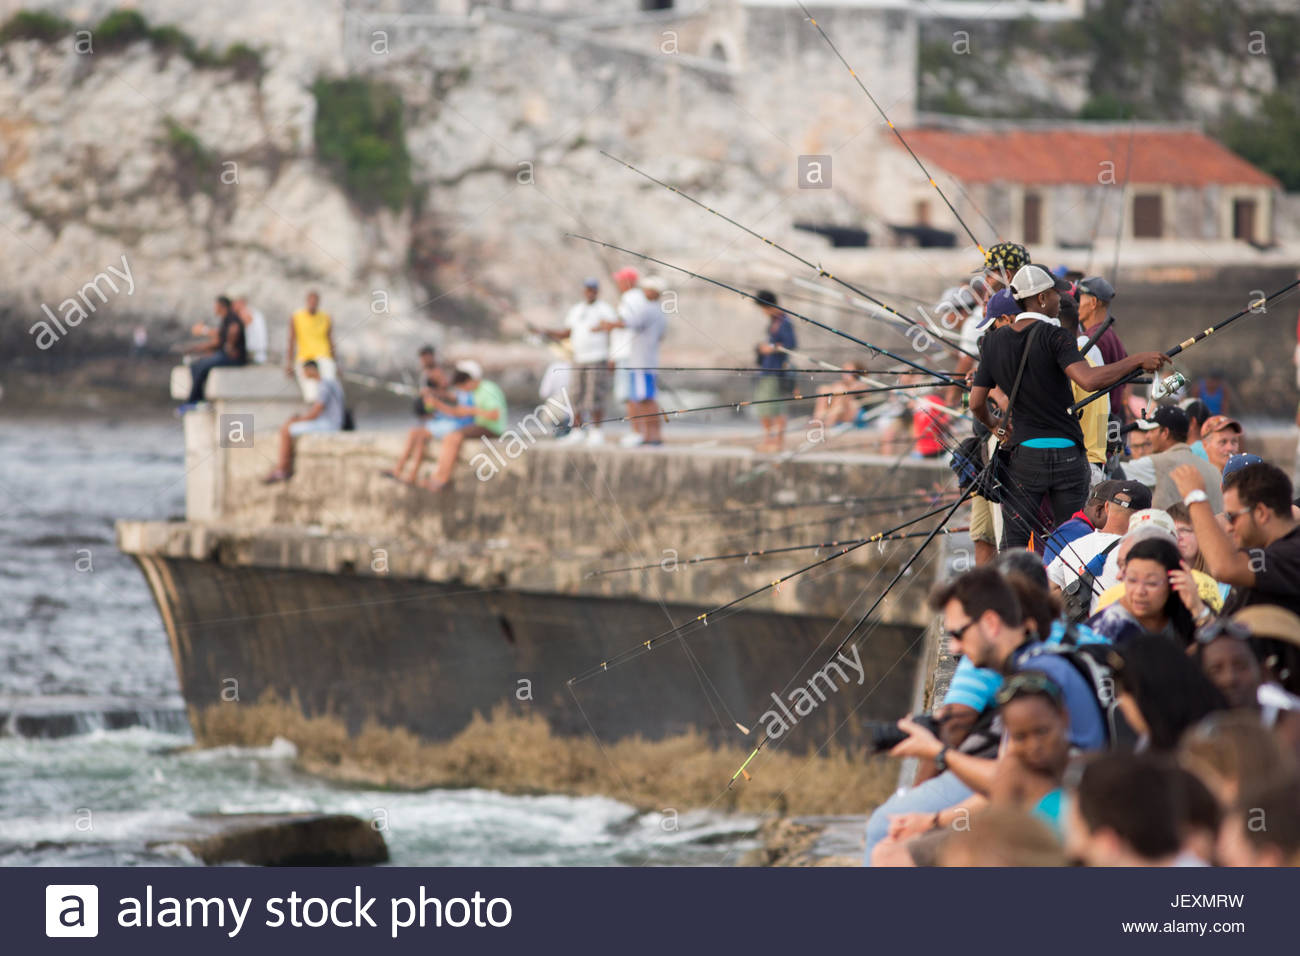 Tourists sightsee while locals fish off the stone wall of the Malecon in Havana, Cuba. - Stock Image